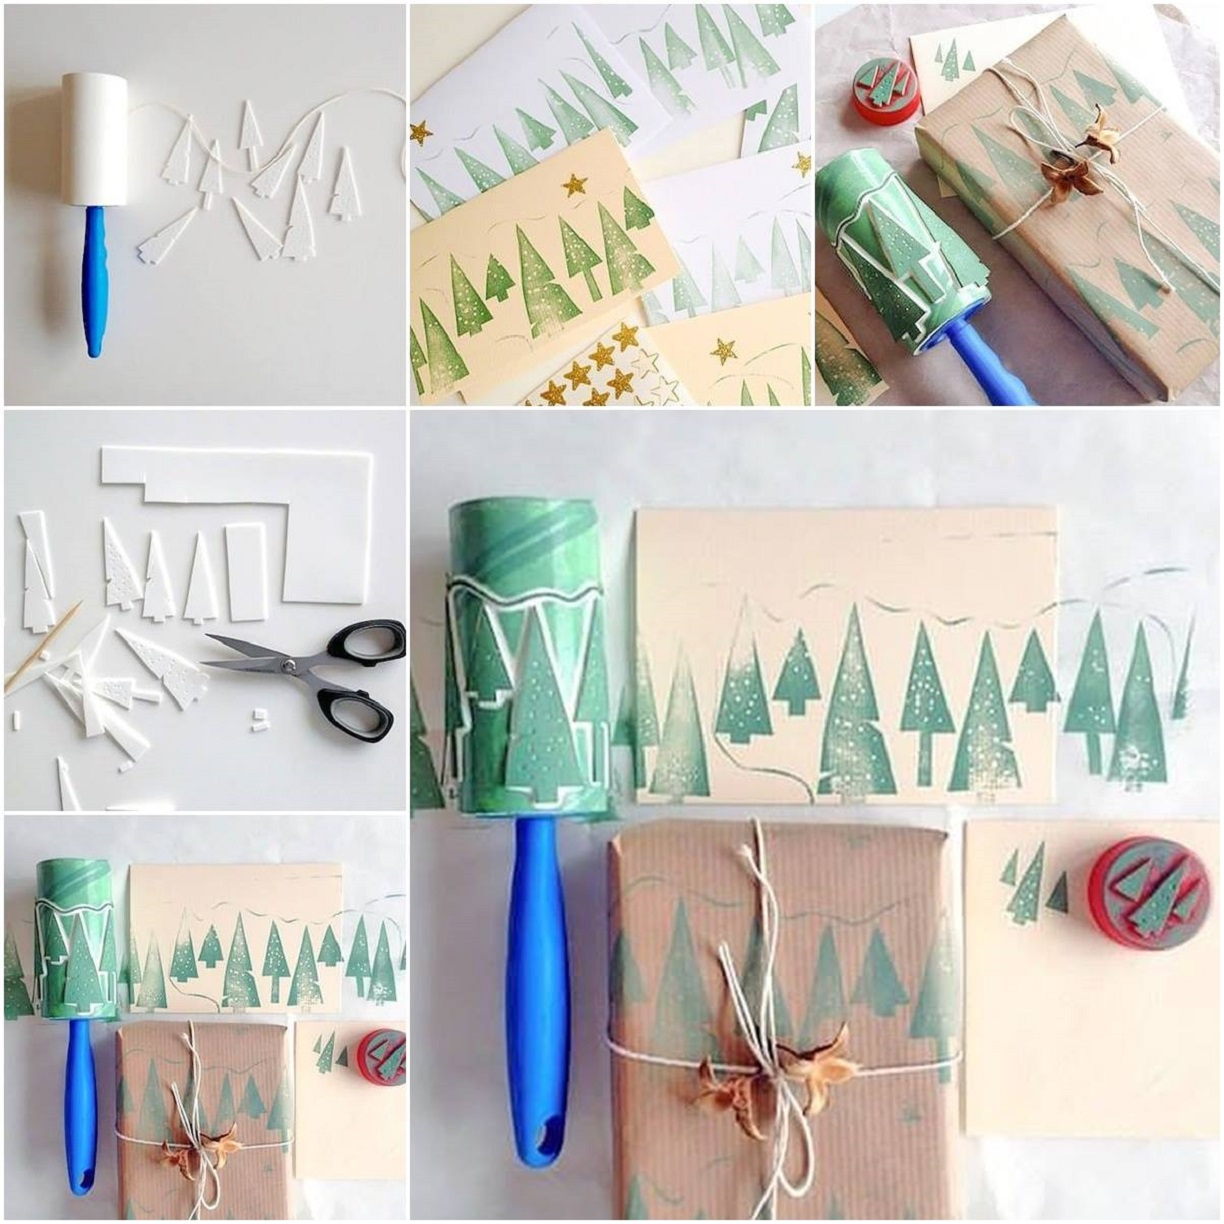 Decoration Ideas With A Lint Roller wonderful DIY Wonderful DIY Christmas Tree Roller Stamp Using a Lint Roller